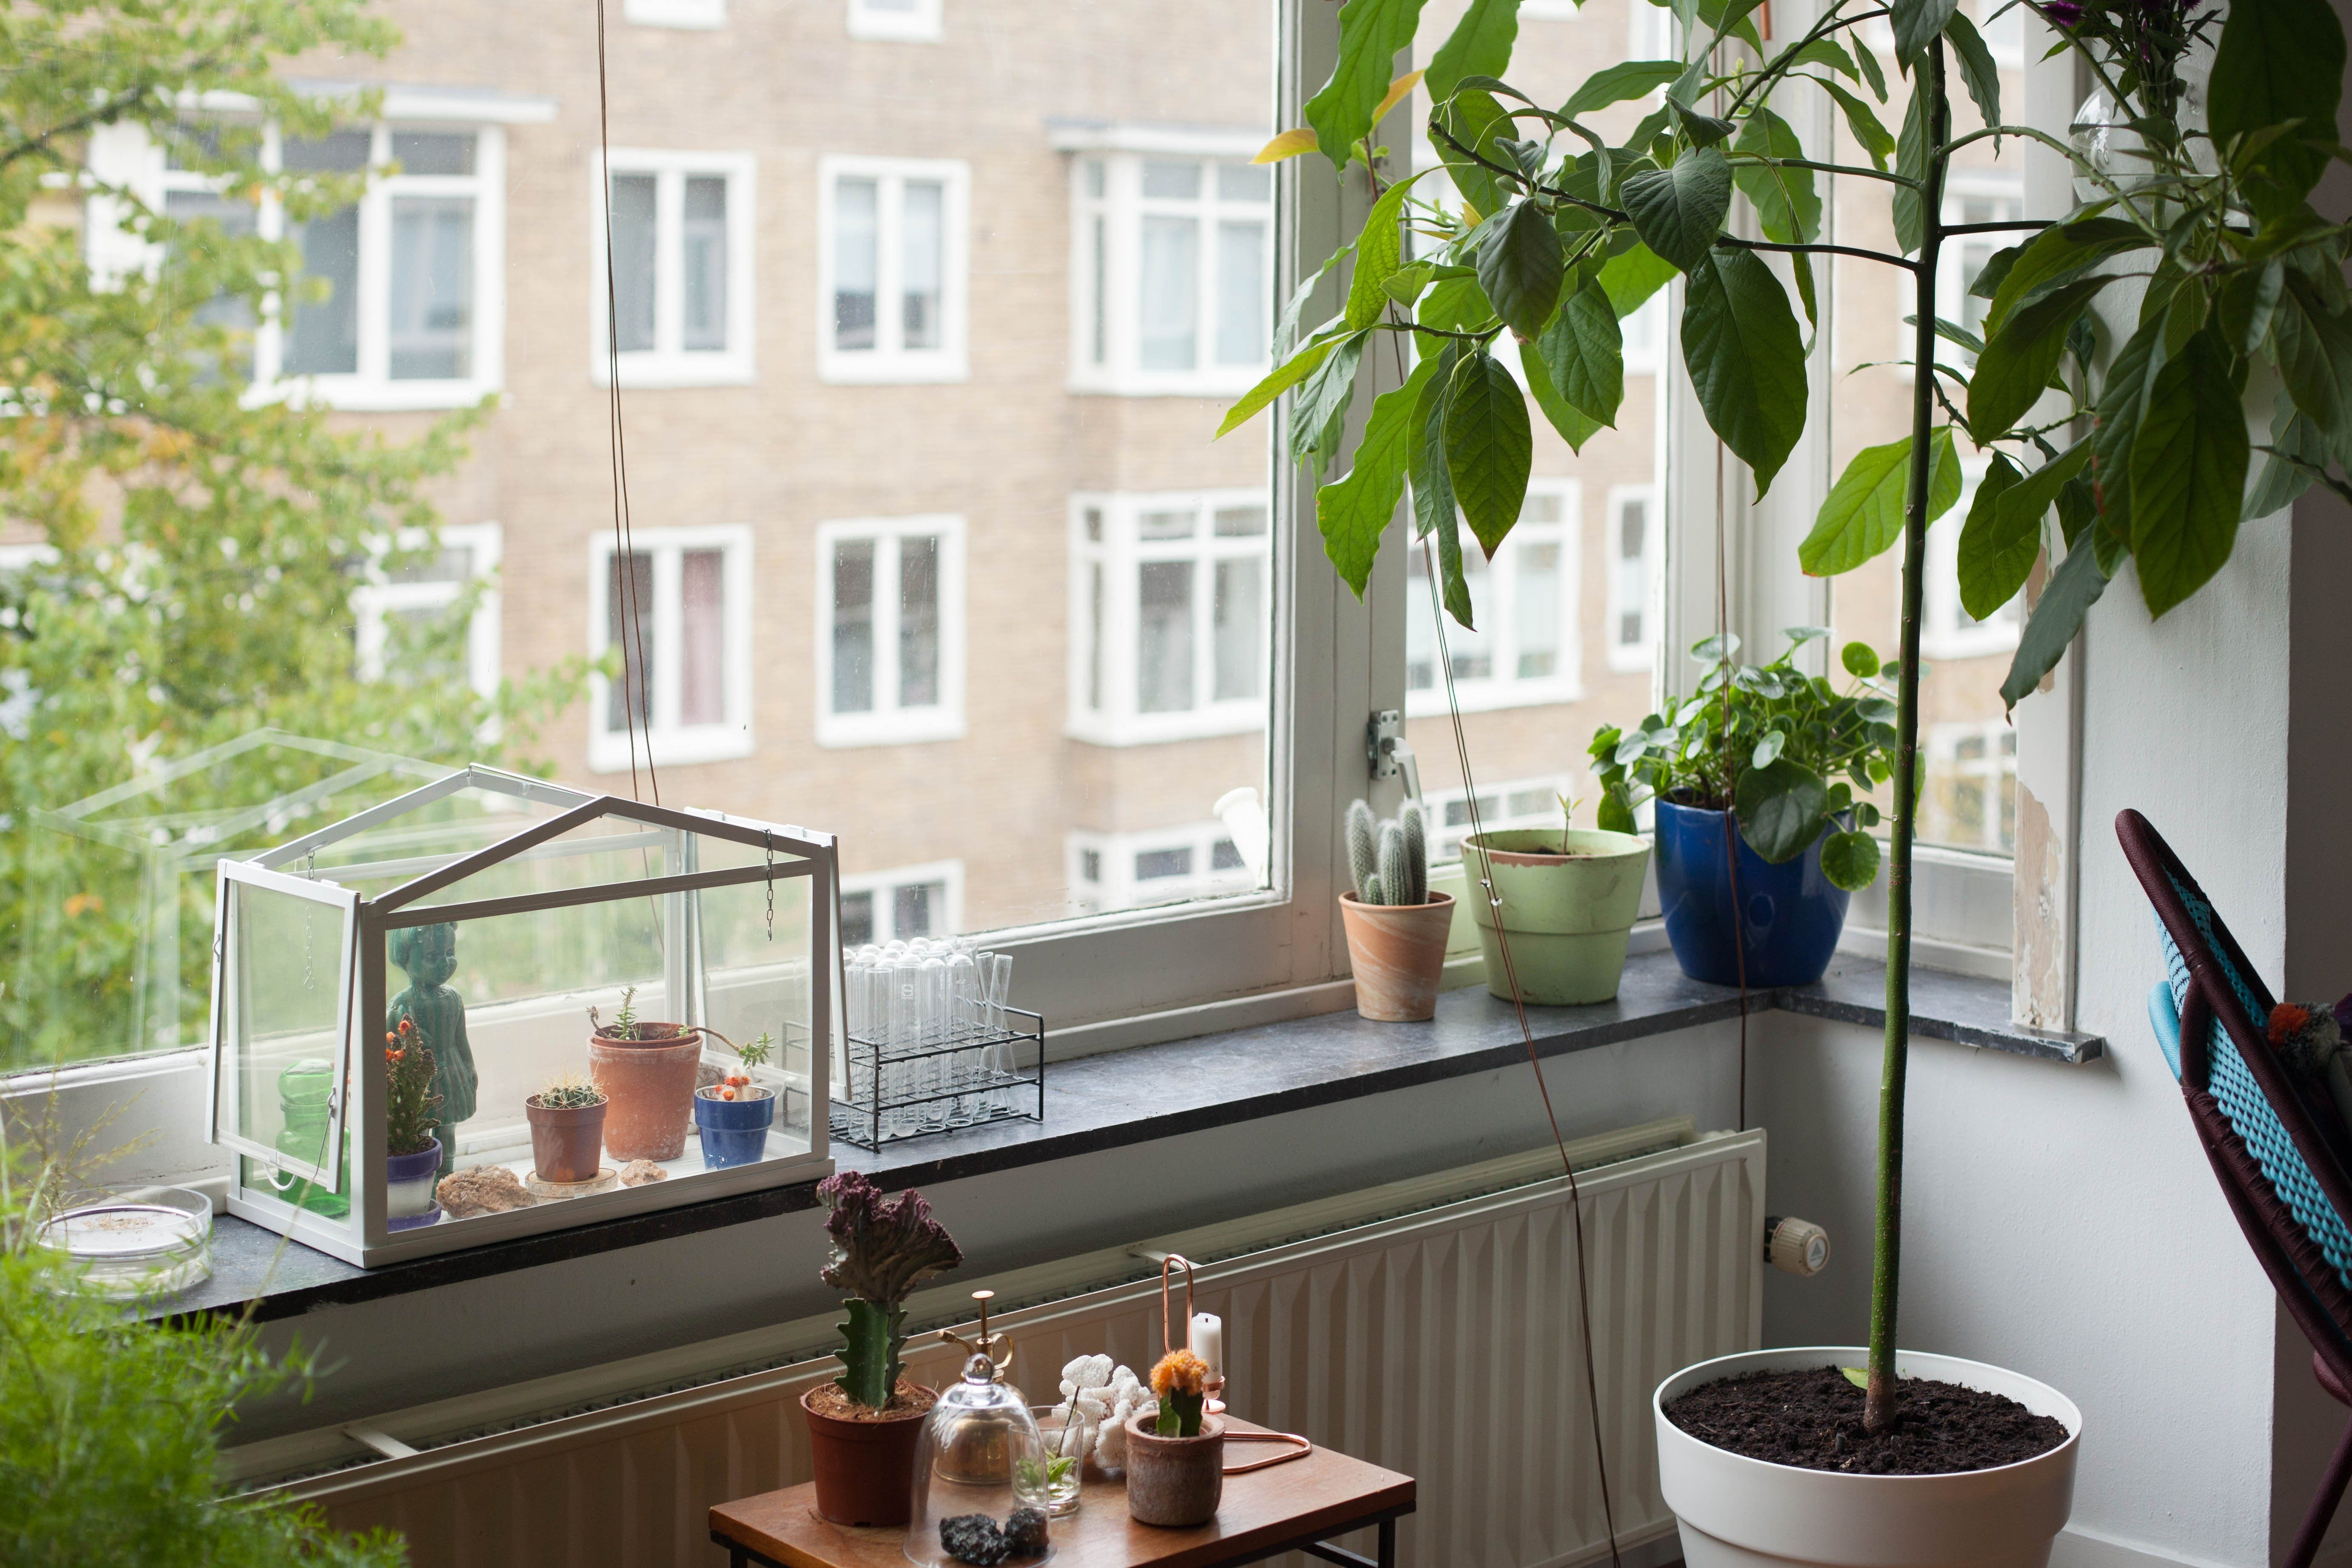 House Tour A Bright Amsterdam Apartment - Apartment Therapy